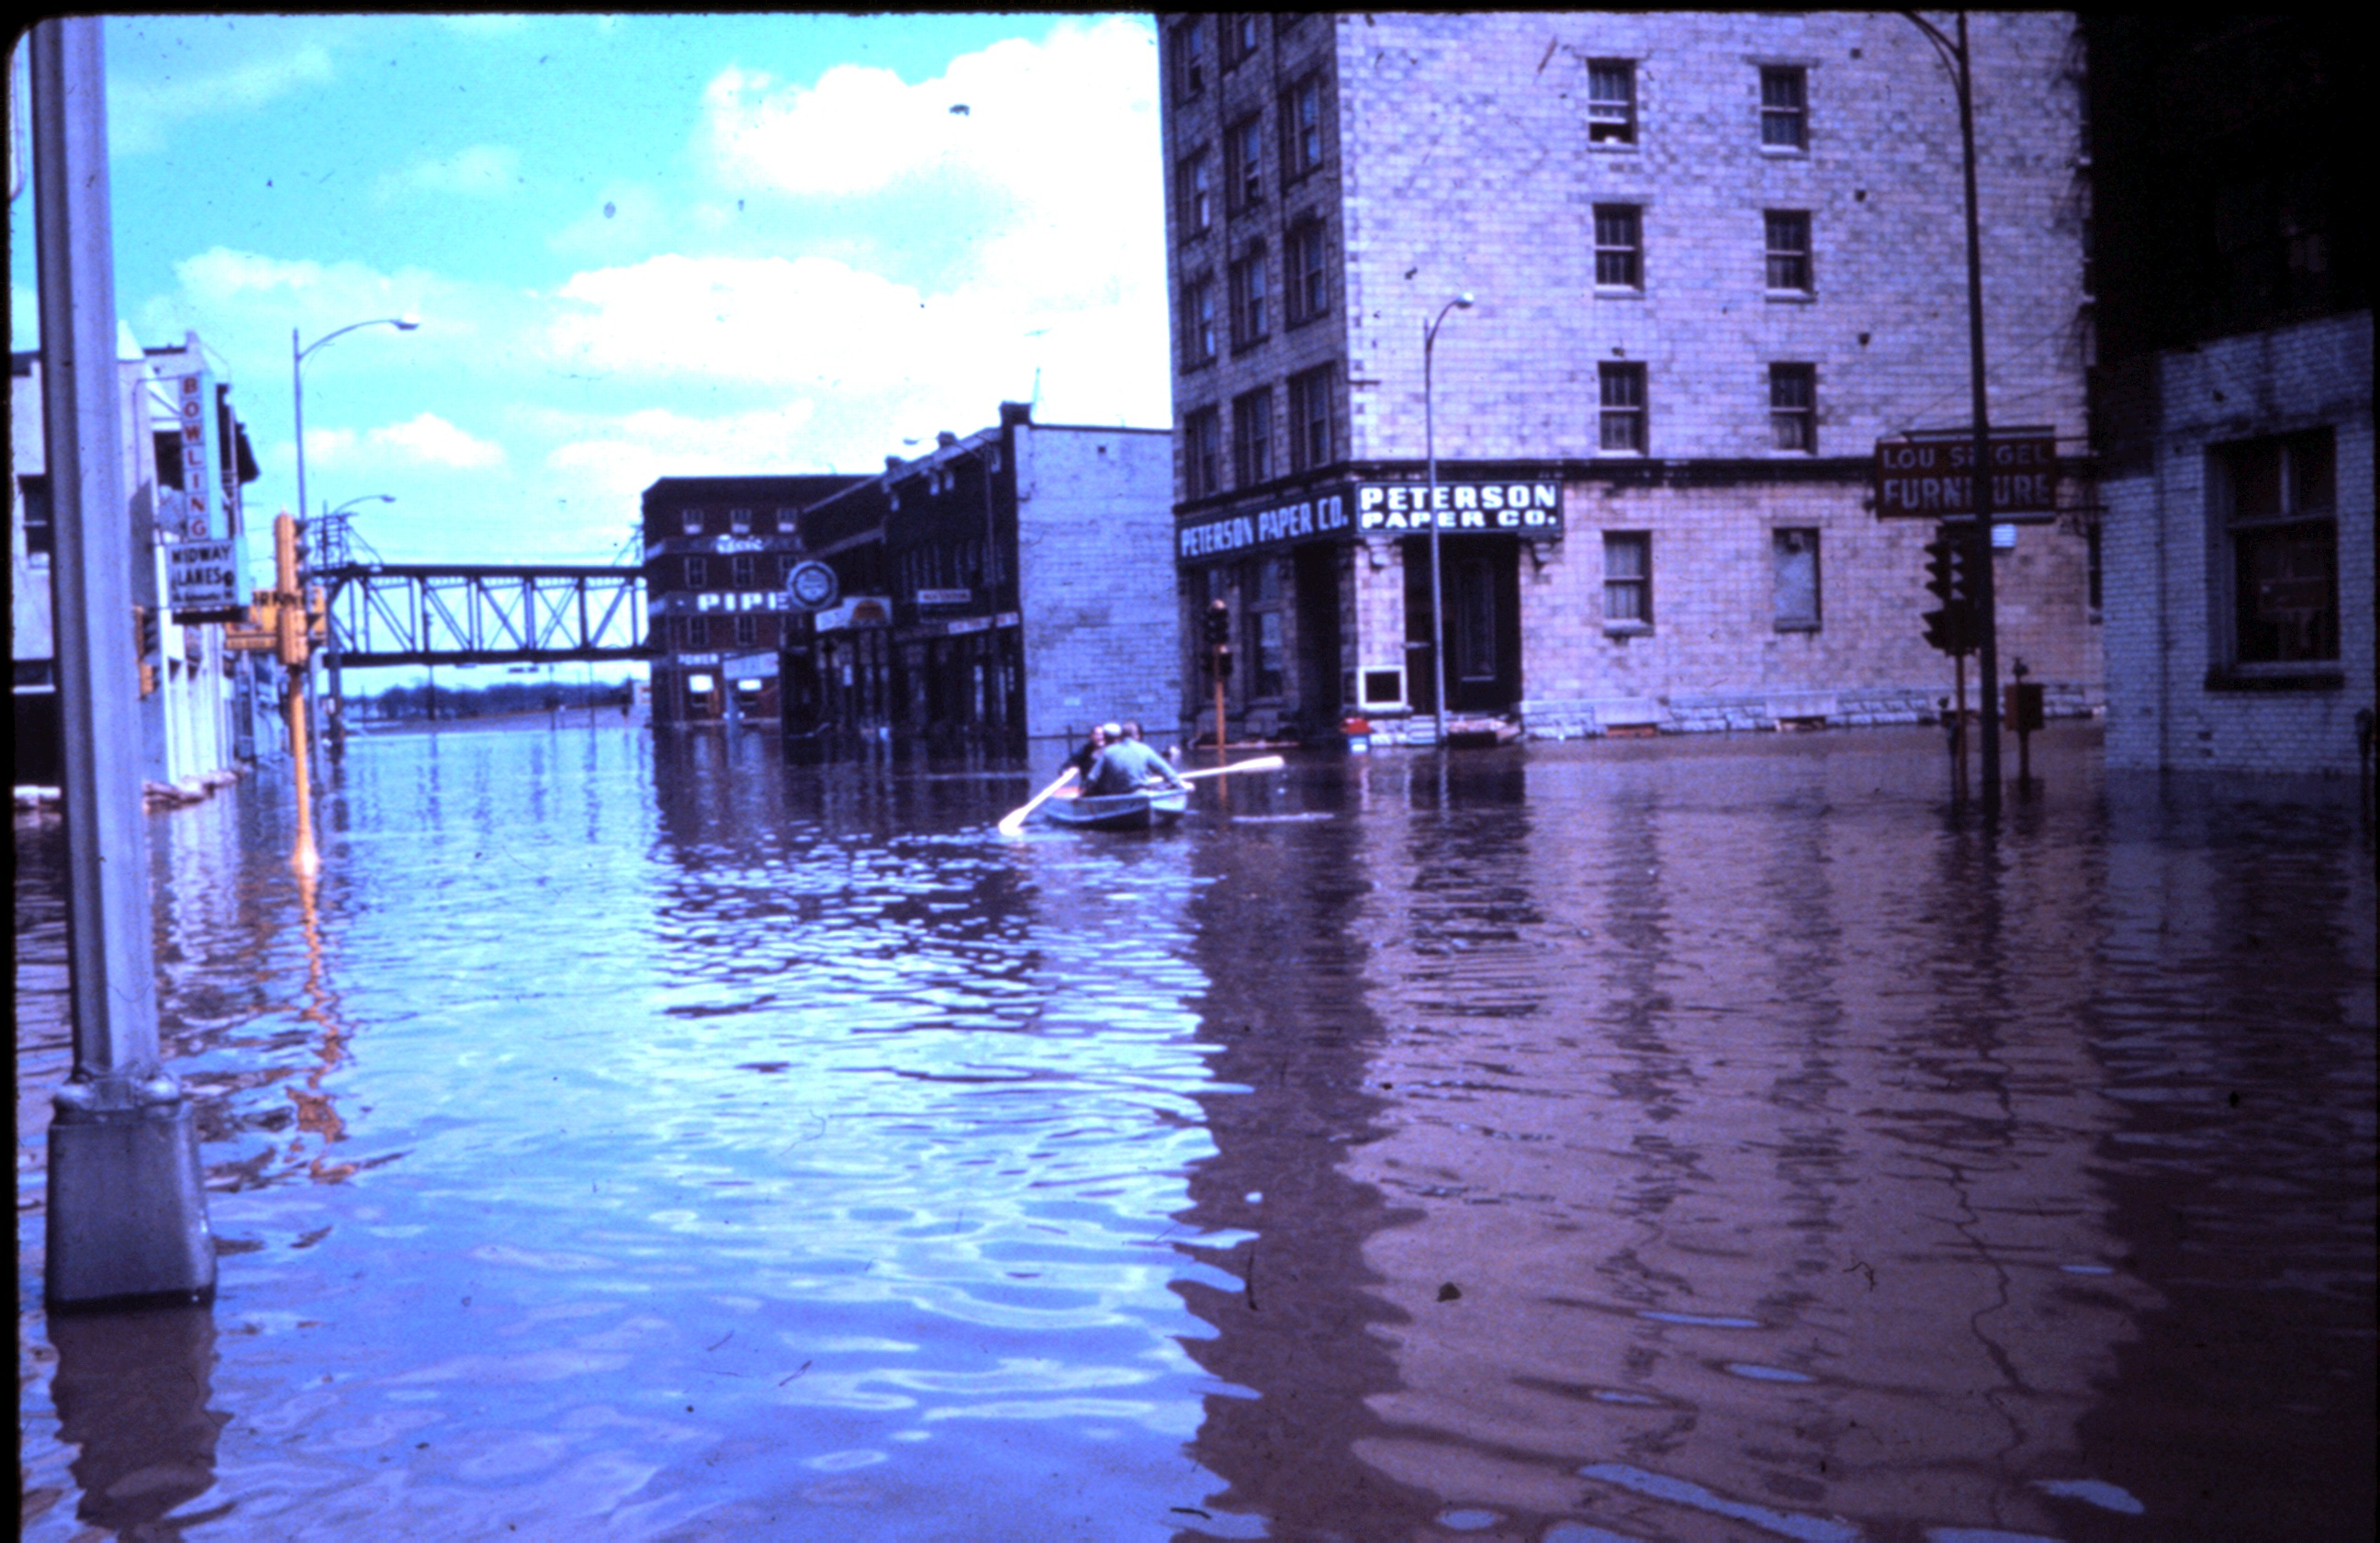 One of Davenport's inundated streets. [East 2nd Street]